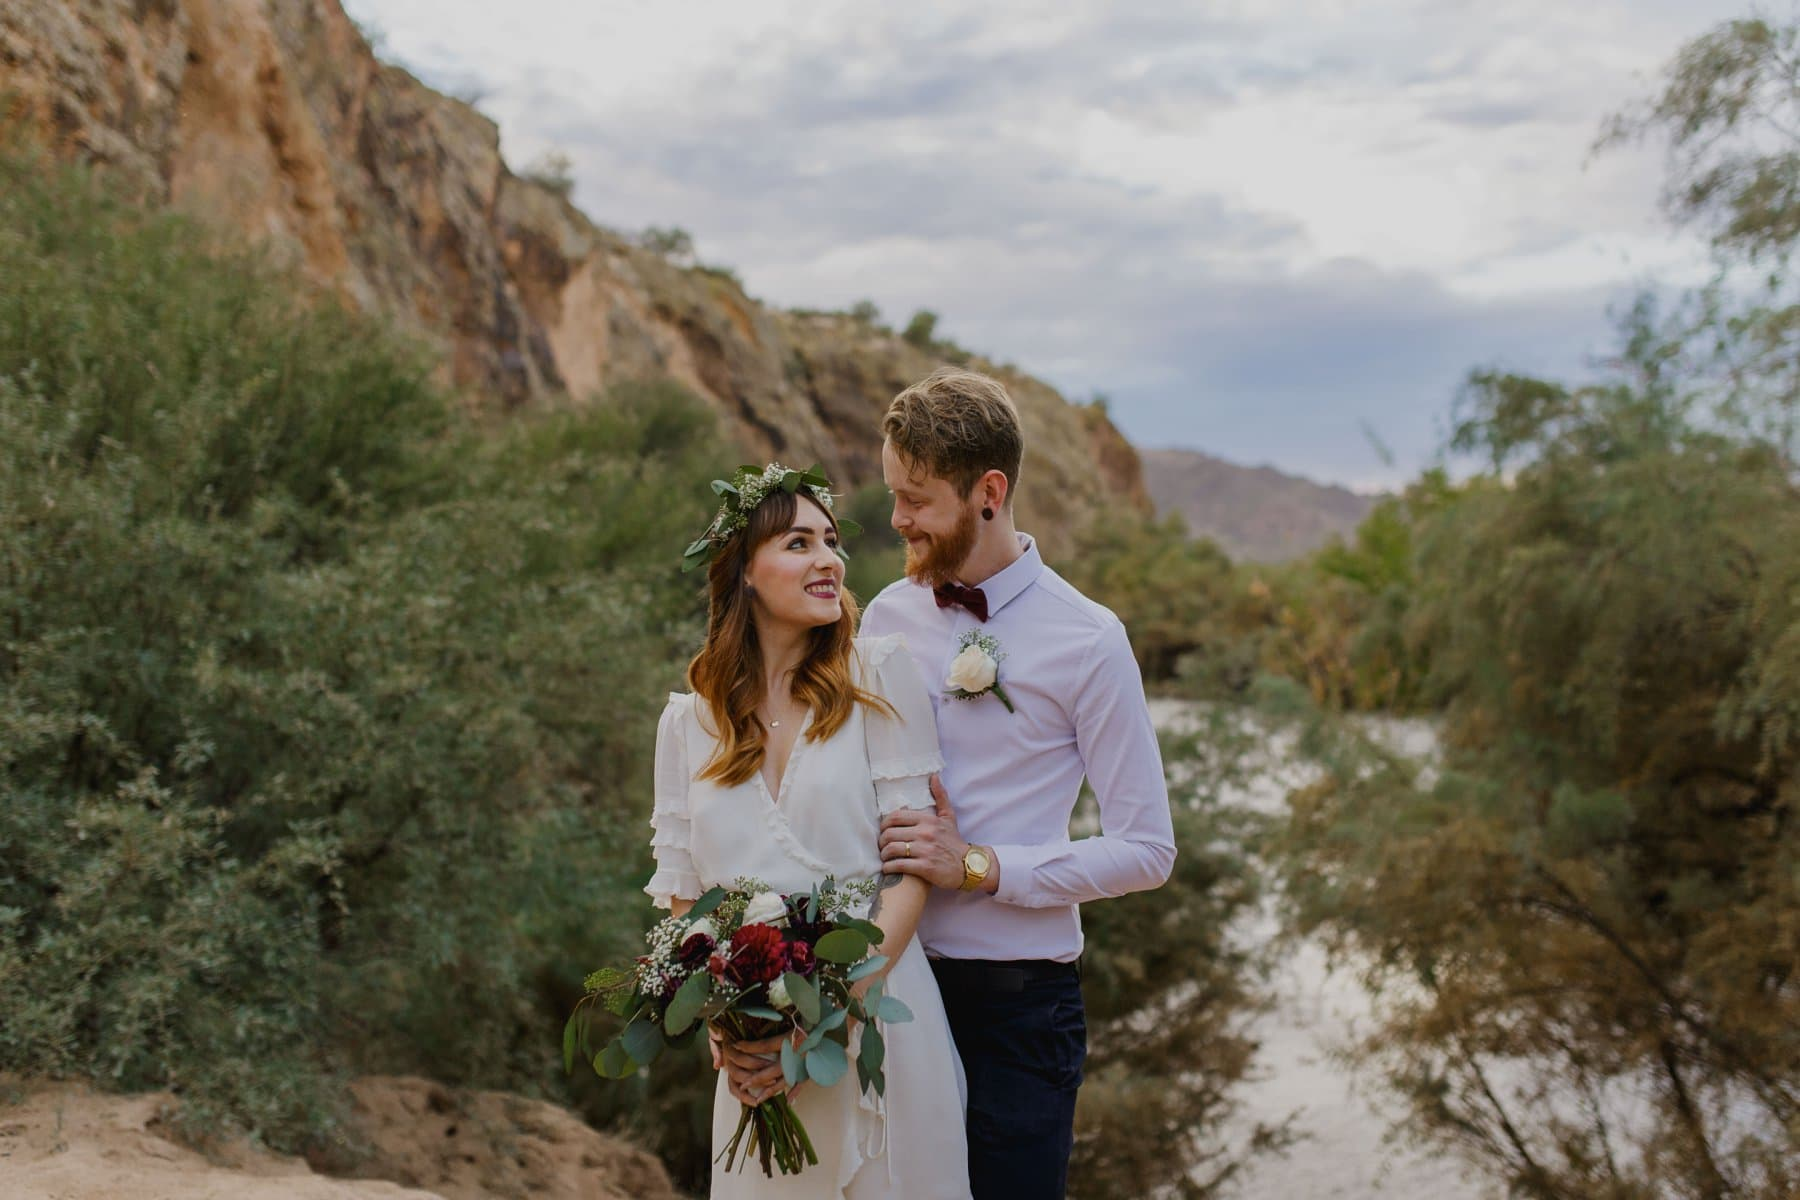 Arizona elopement non-desert locations